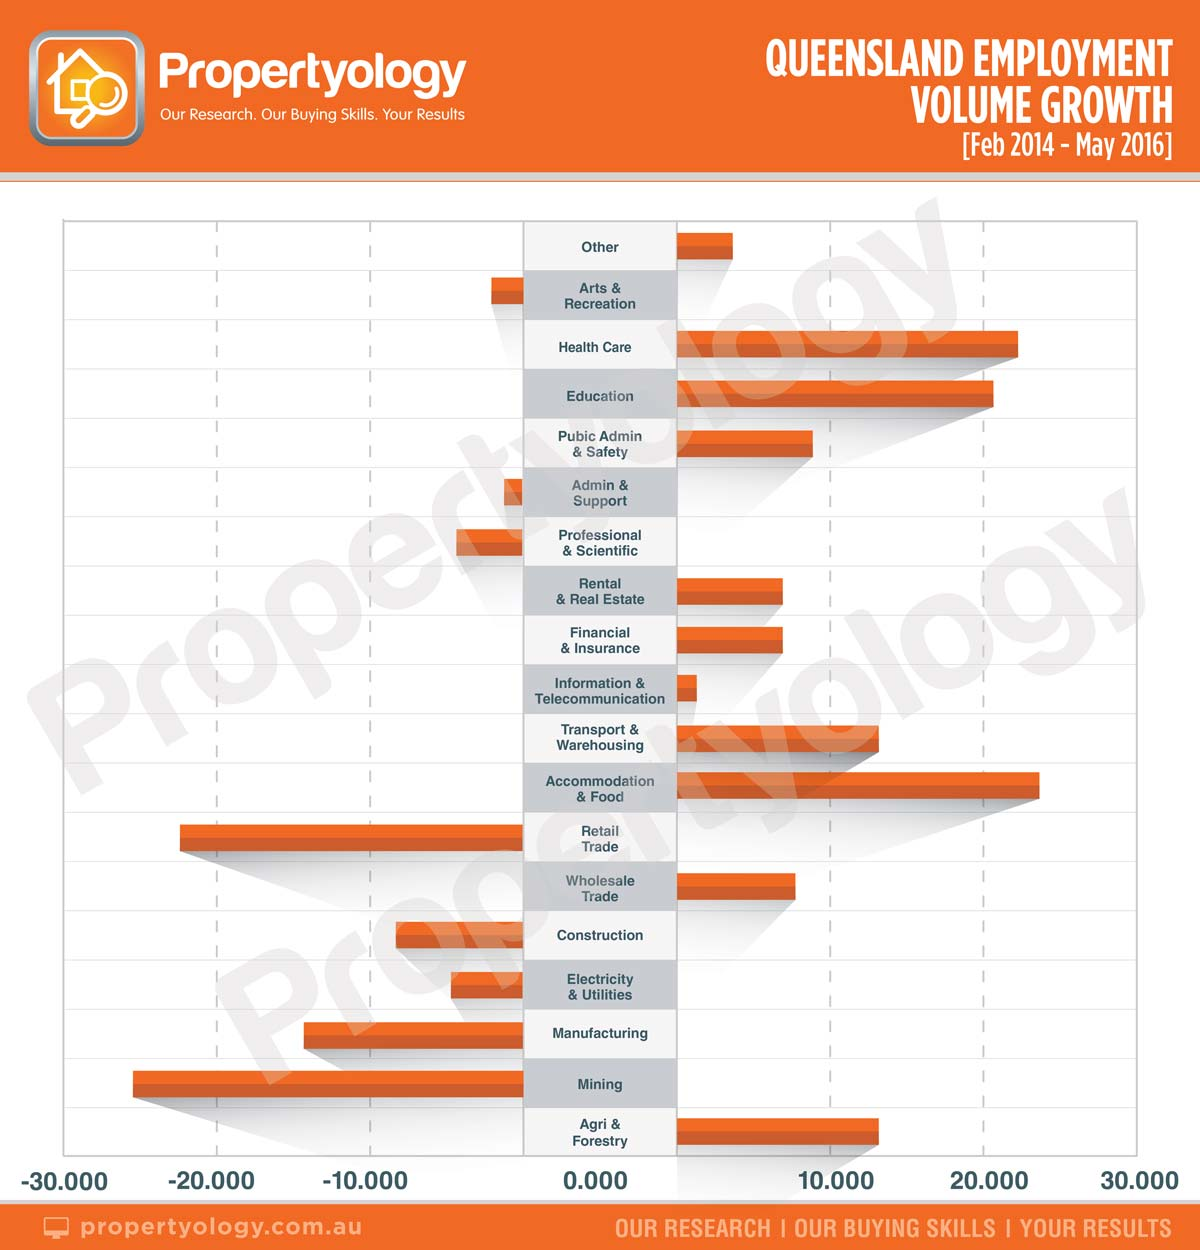 propertyology-queensland-employment-volume-growth-feb-2014-may-2016